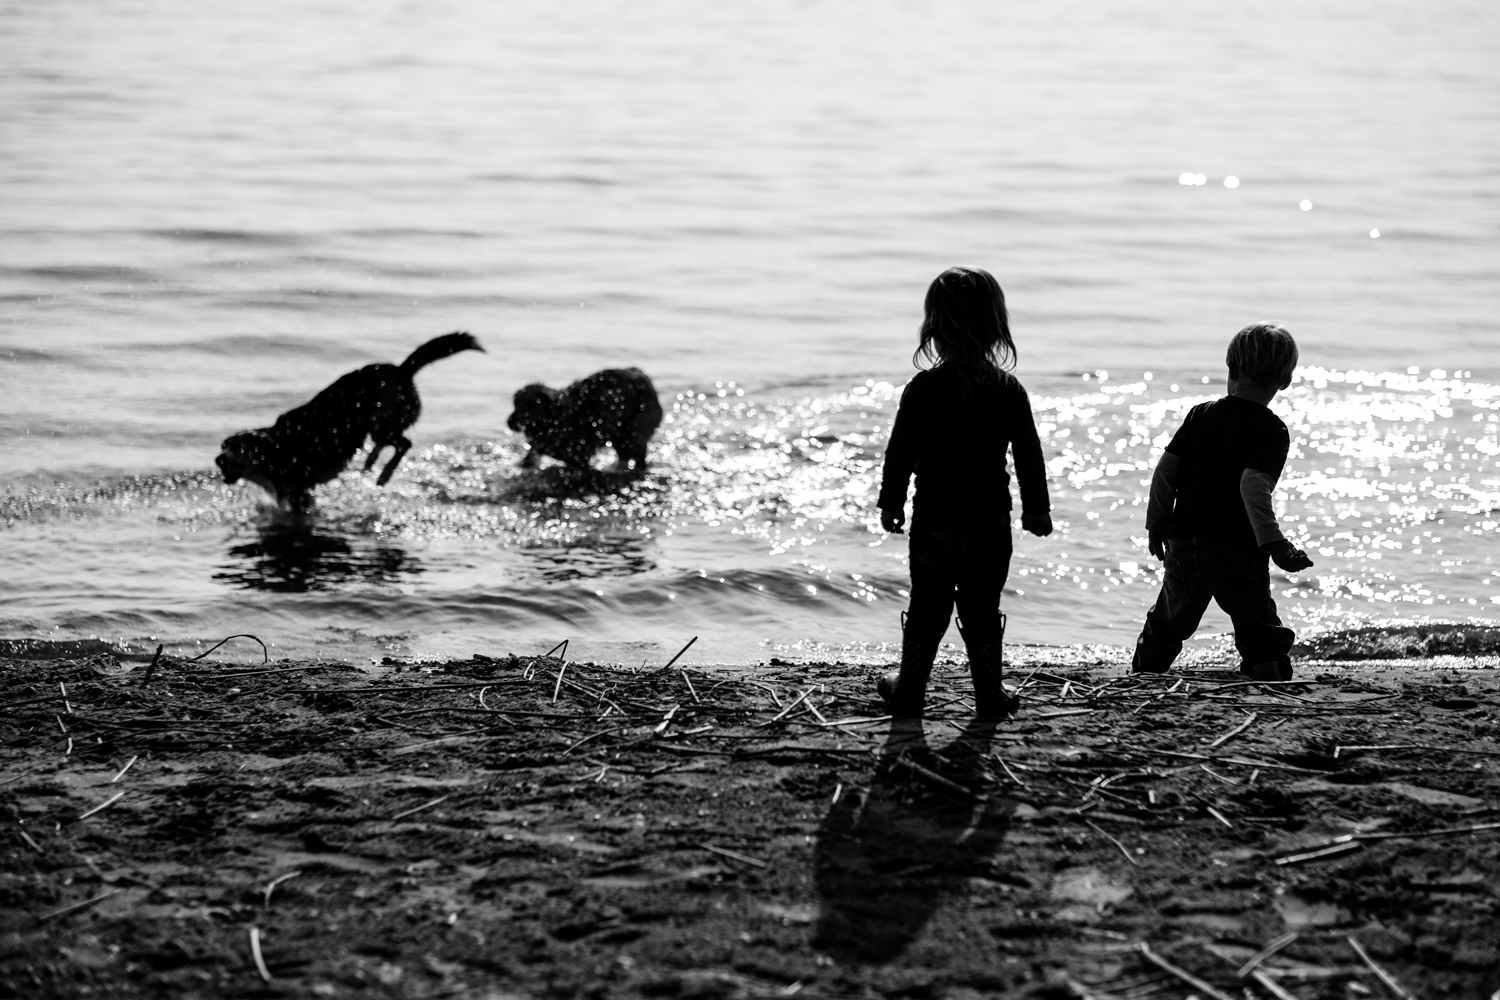 Image: It was a grey hazy day at the beach so I focused on silhouette photos of my kids at play.